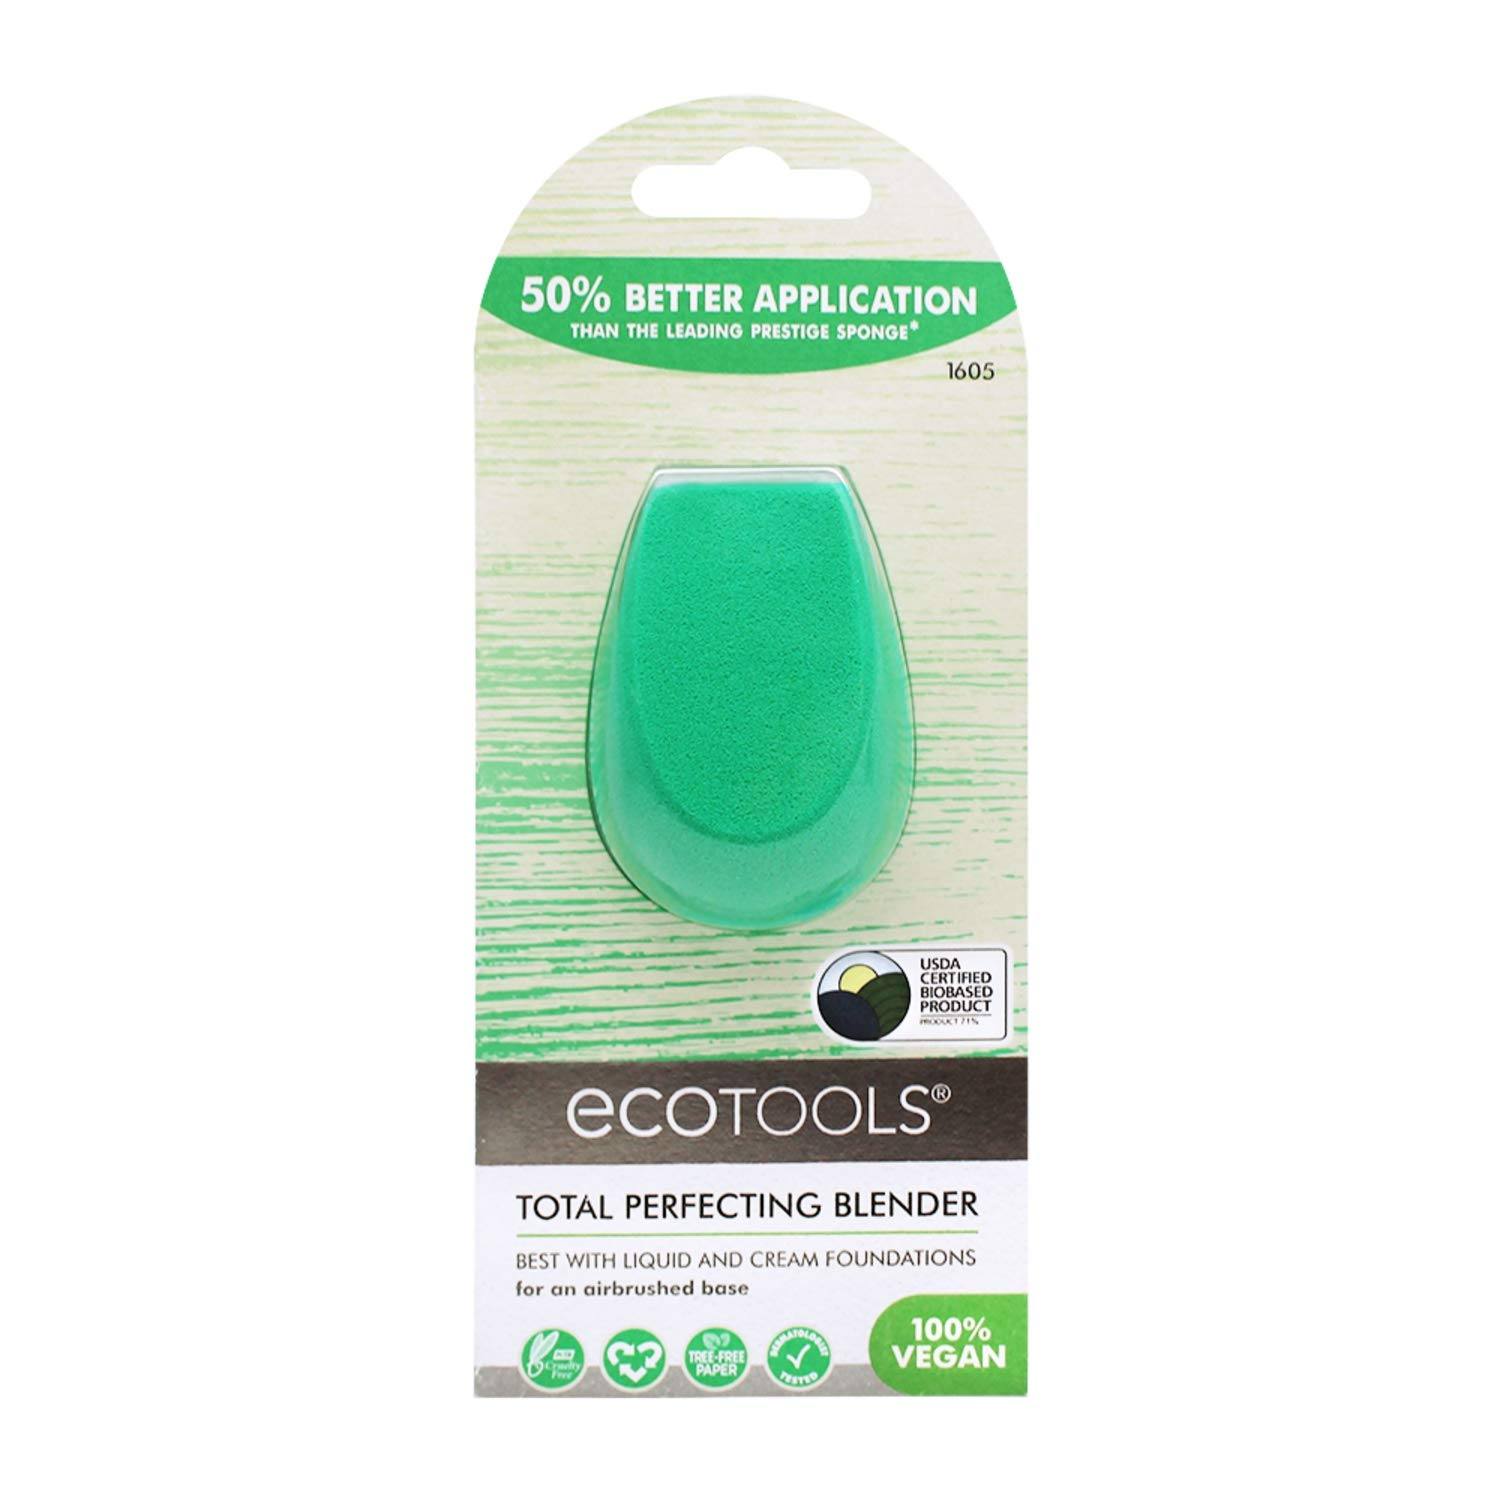 Ecotools Perfecting Sponge Makeup Blender, Beauty Sponge, Made with Recycled and Sustainable Materials